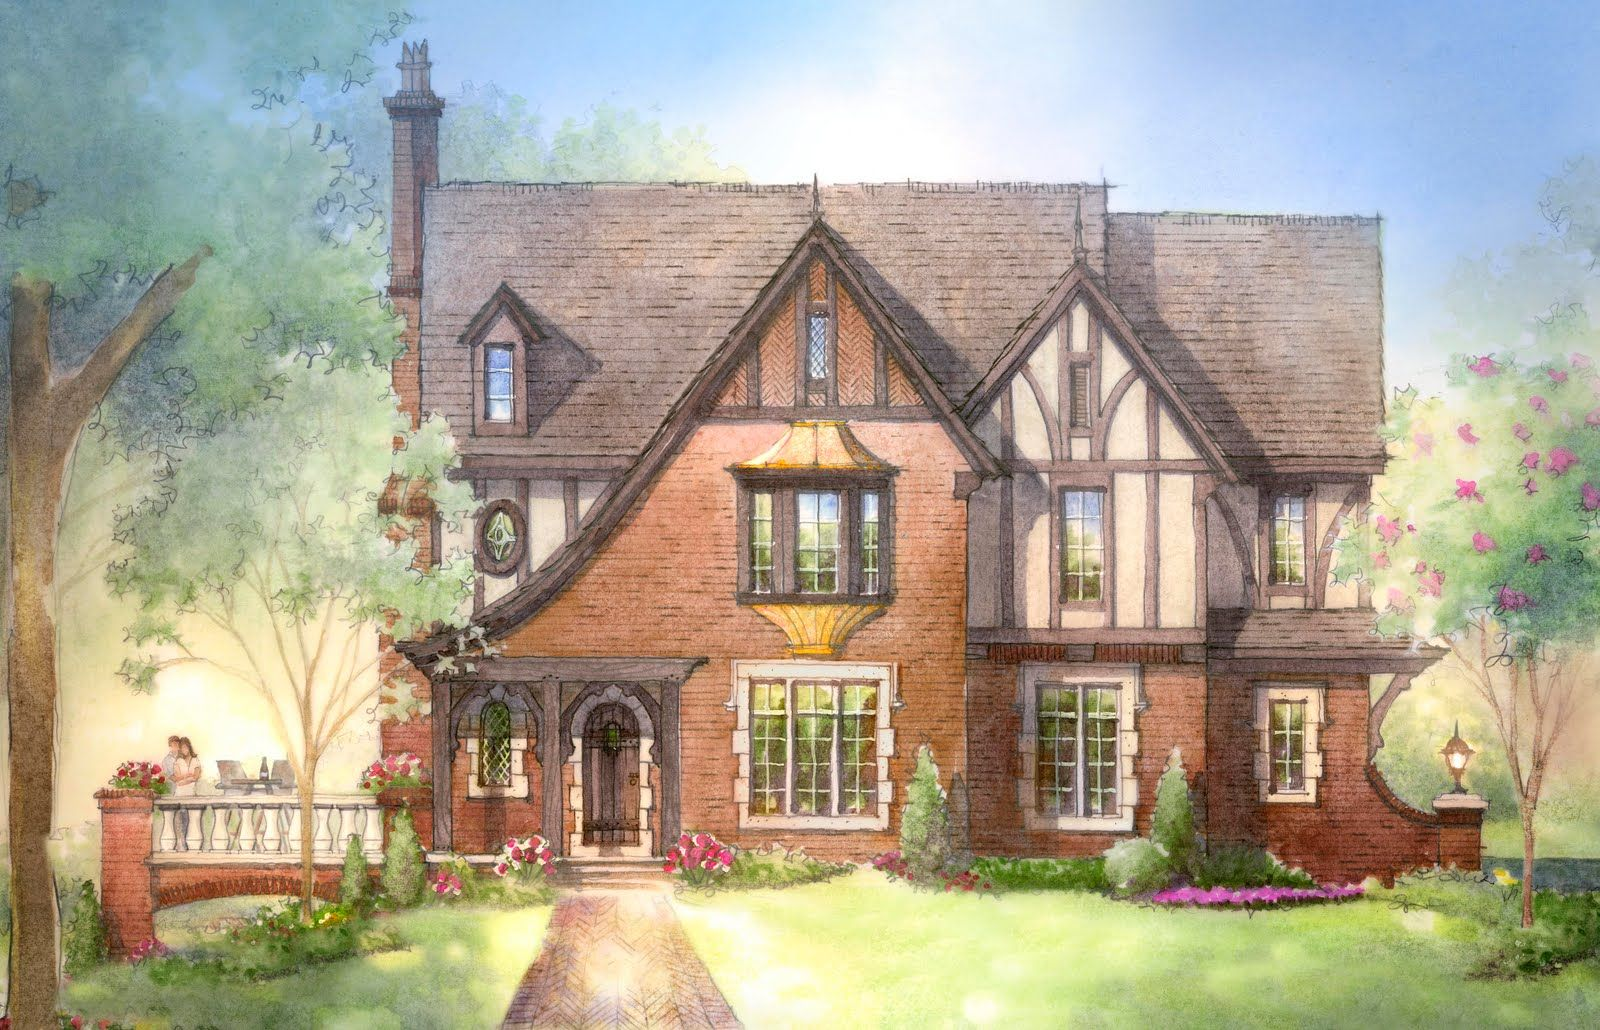 This ridiculously close to what i imagined as my dream for English style houses architecture